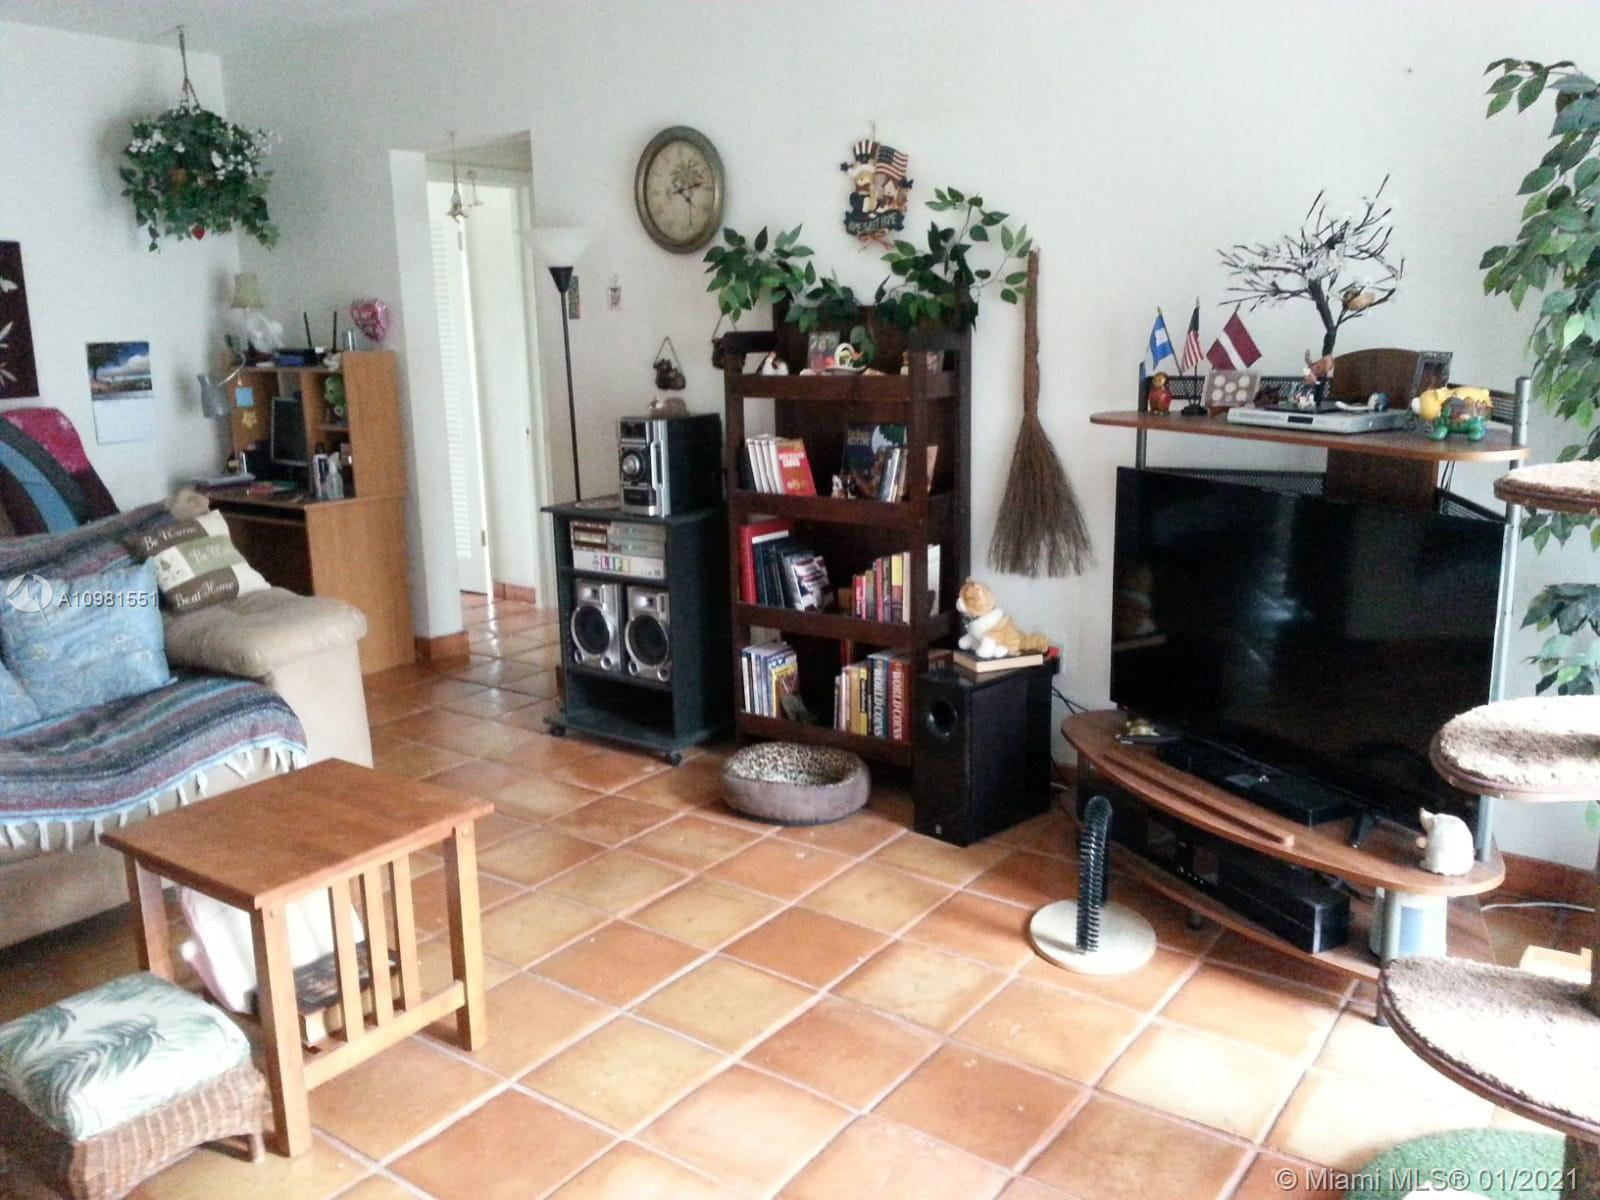 1BR 1Bath Approx.775 SF two story waterfront garden style MIMO bldg. Pool. Building is designated hi